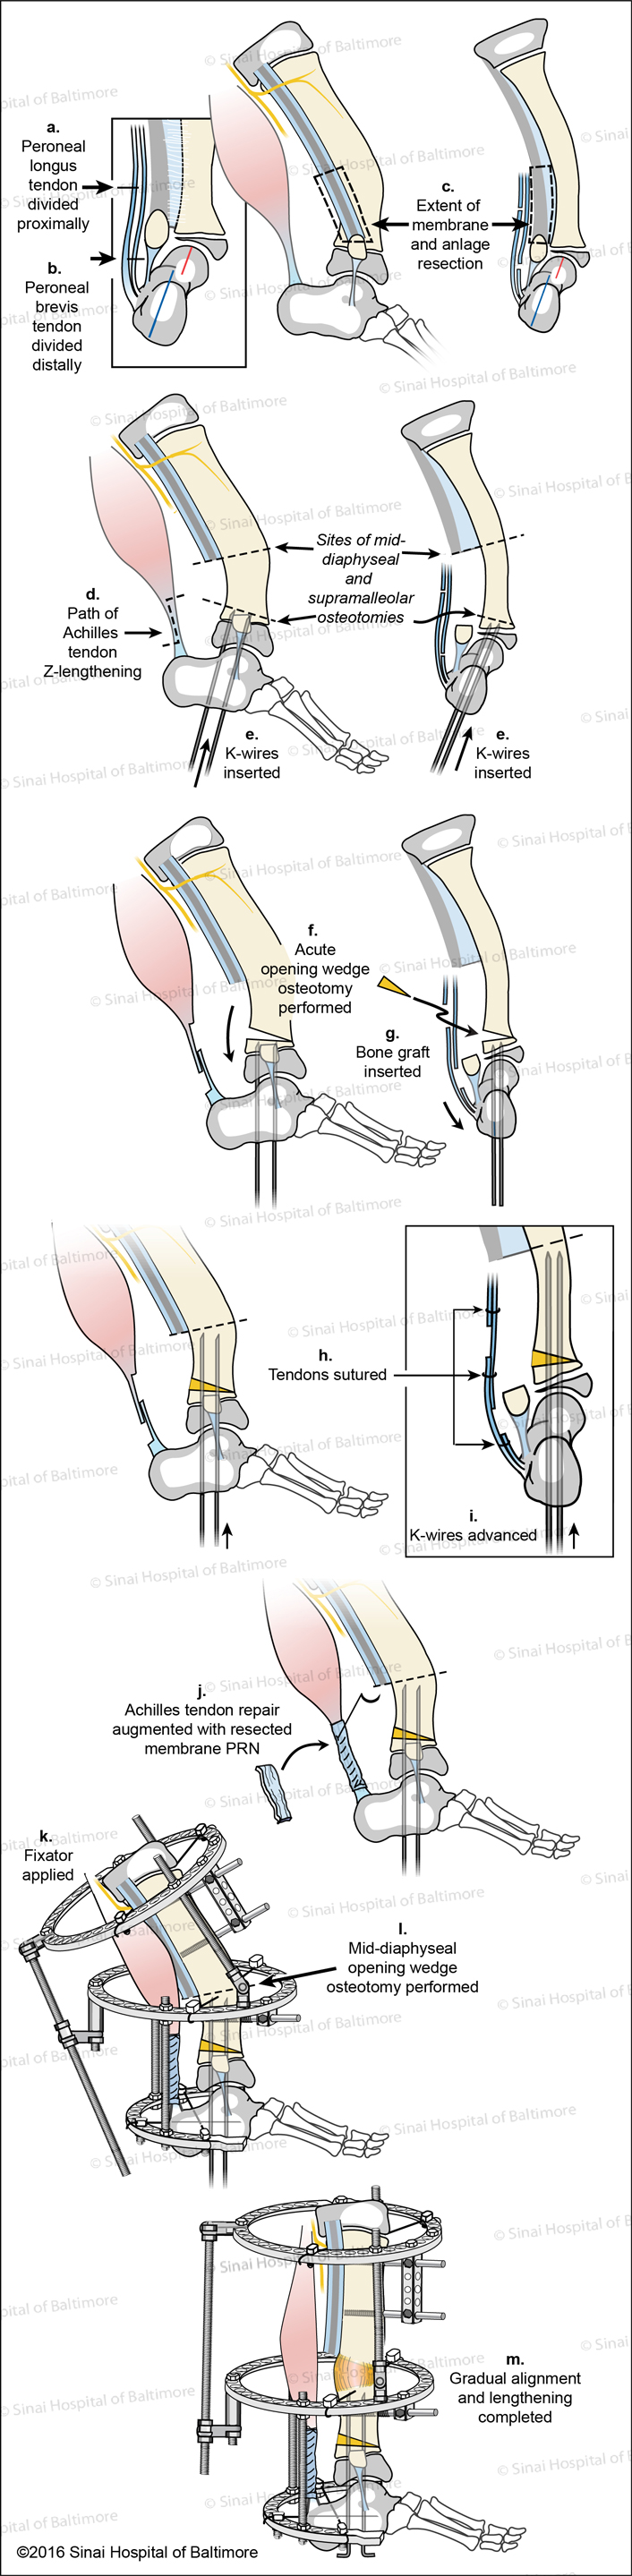 Super-ankle Surgical Technique for Supramalleolar Type Fibular Hemimelia (Paley Type 3A - ankle type ) Fig. A, AP View, Peroneal longus tendon is divided proximally. B, AP View, Peroneal brevis tendon is divided distally. C, Lateral and AP views, The extent of the membrane and anlage resection is identified; D, E, AP and Lateral views, Path of Achilles tendon Z-lengthening, sites of mid-diaphyseal and supramalleolar osteotomies are identified, k-wires are inserted; F, Acute opening wedge osteotomy performed; G, Bone graft is inserted; H, Tendons are sutured; I, K-wires are advanced; J, Achilles tendon repair is augmented with resected membrane as needed; K, Fixator is applied; L, Mid-diaphyseal opening wedge osteotomy is performed; M, Gradual alignment and lengthening is completed.